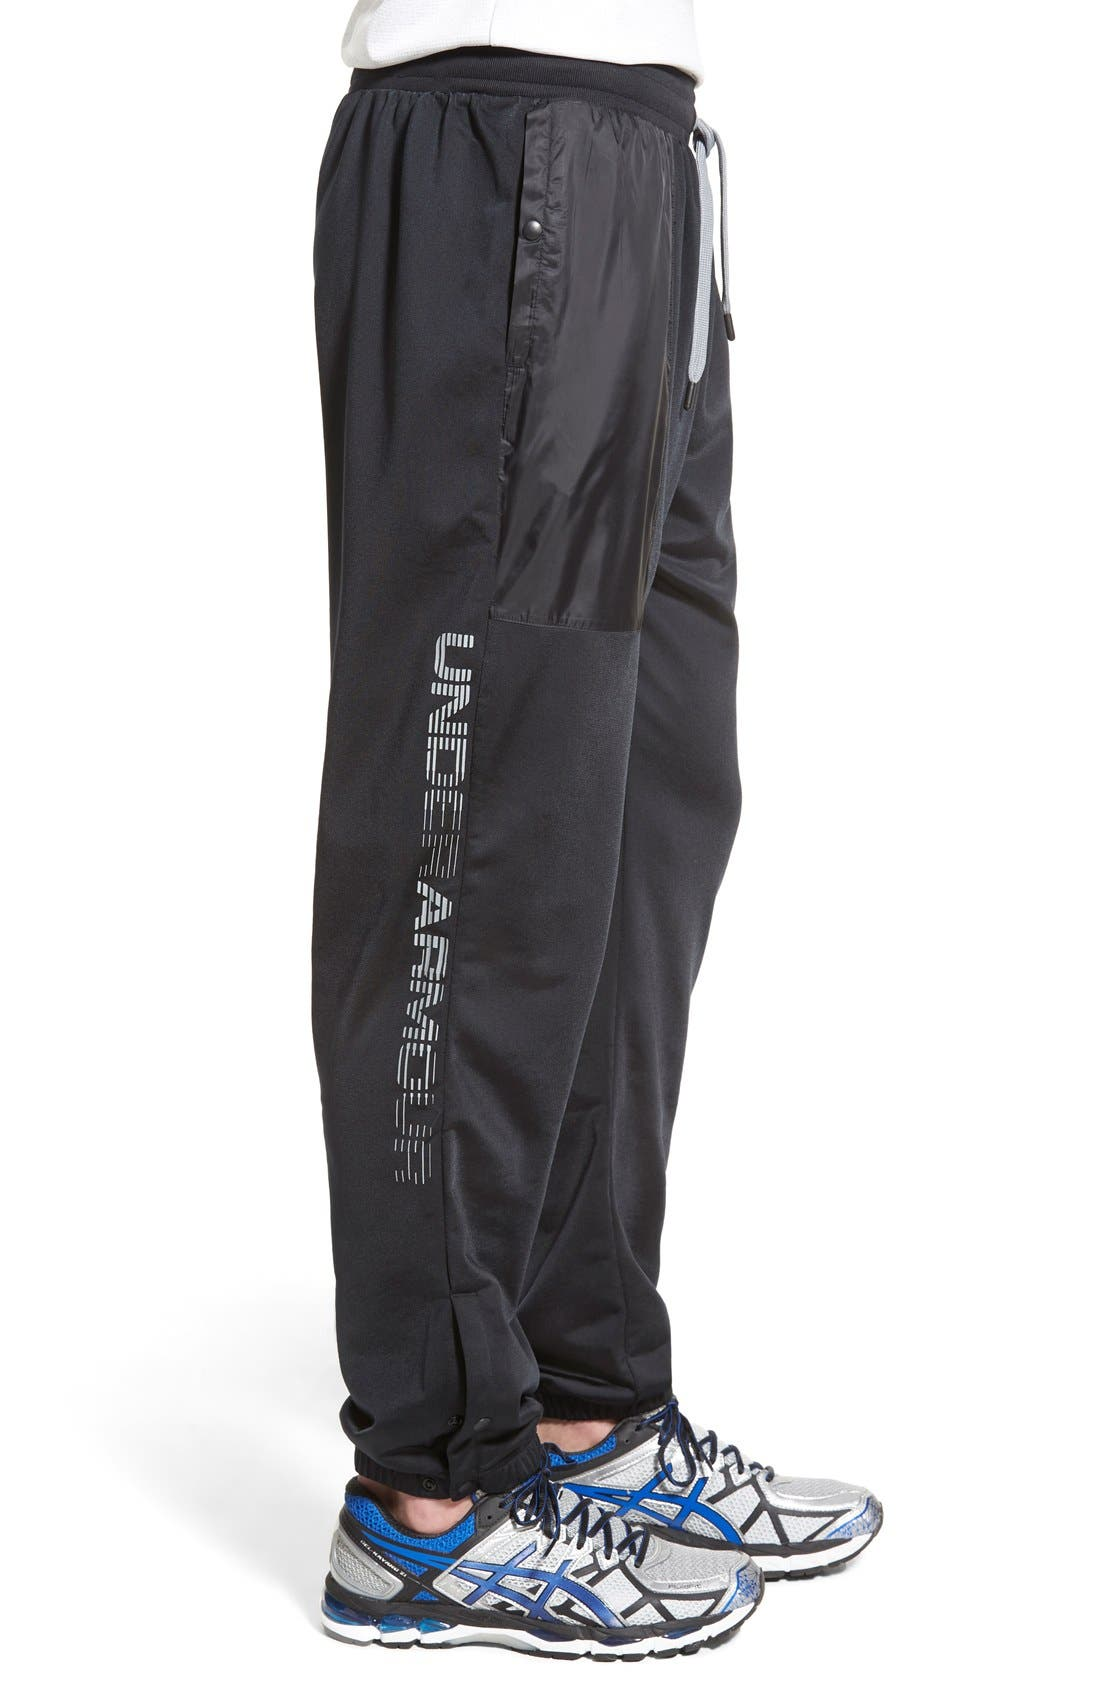 UNDER ARMOUR,                             'Diddy Bop' Moisture Wicking Training Pants,                             Alternate thumbnail 3, color,                             001